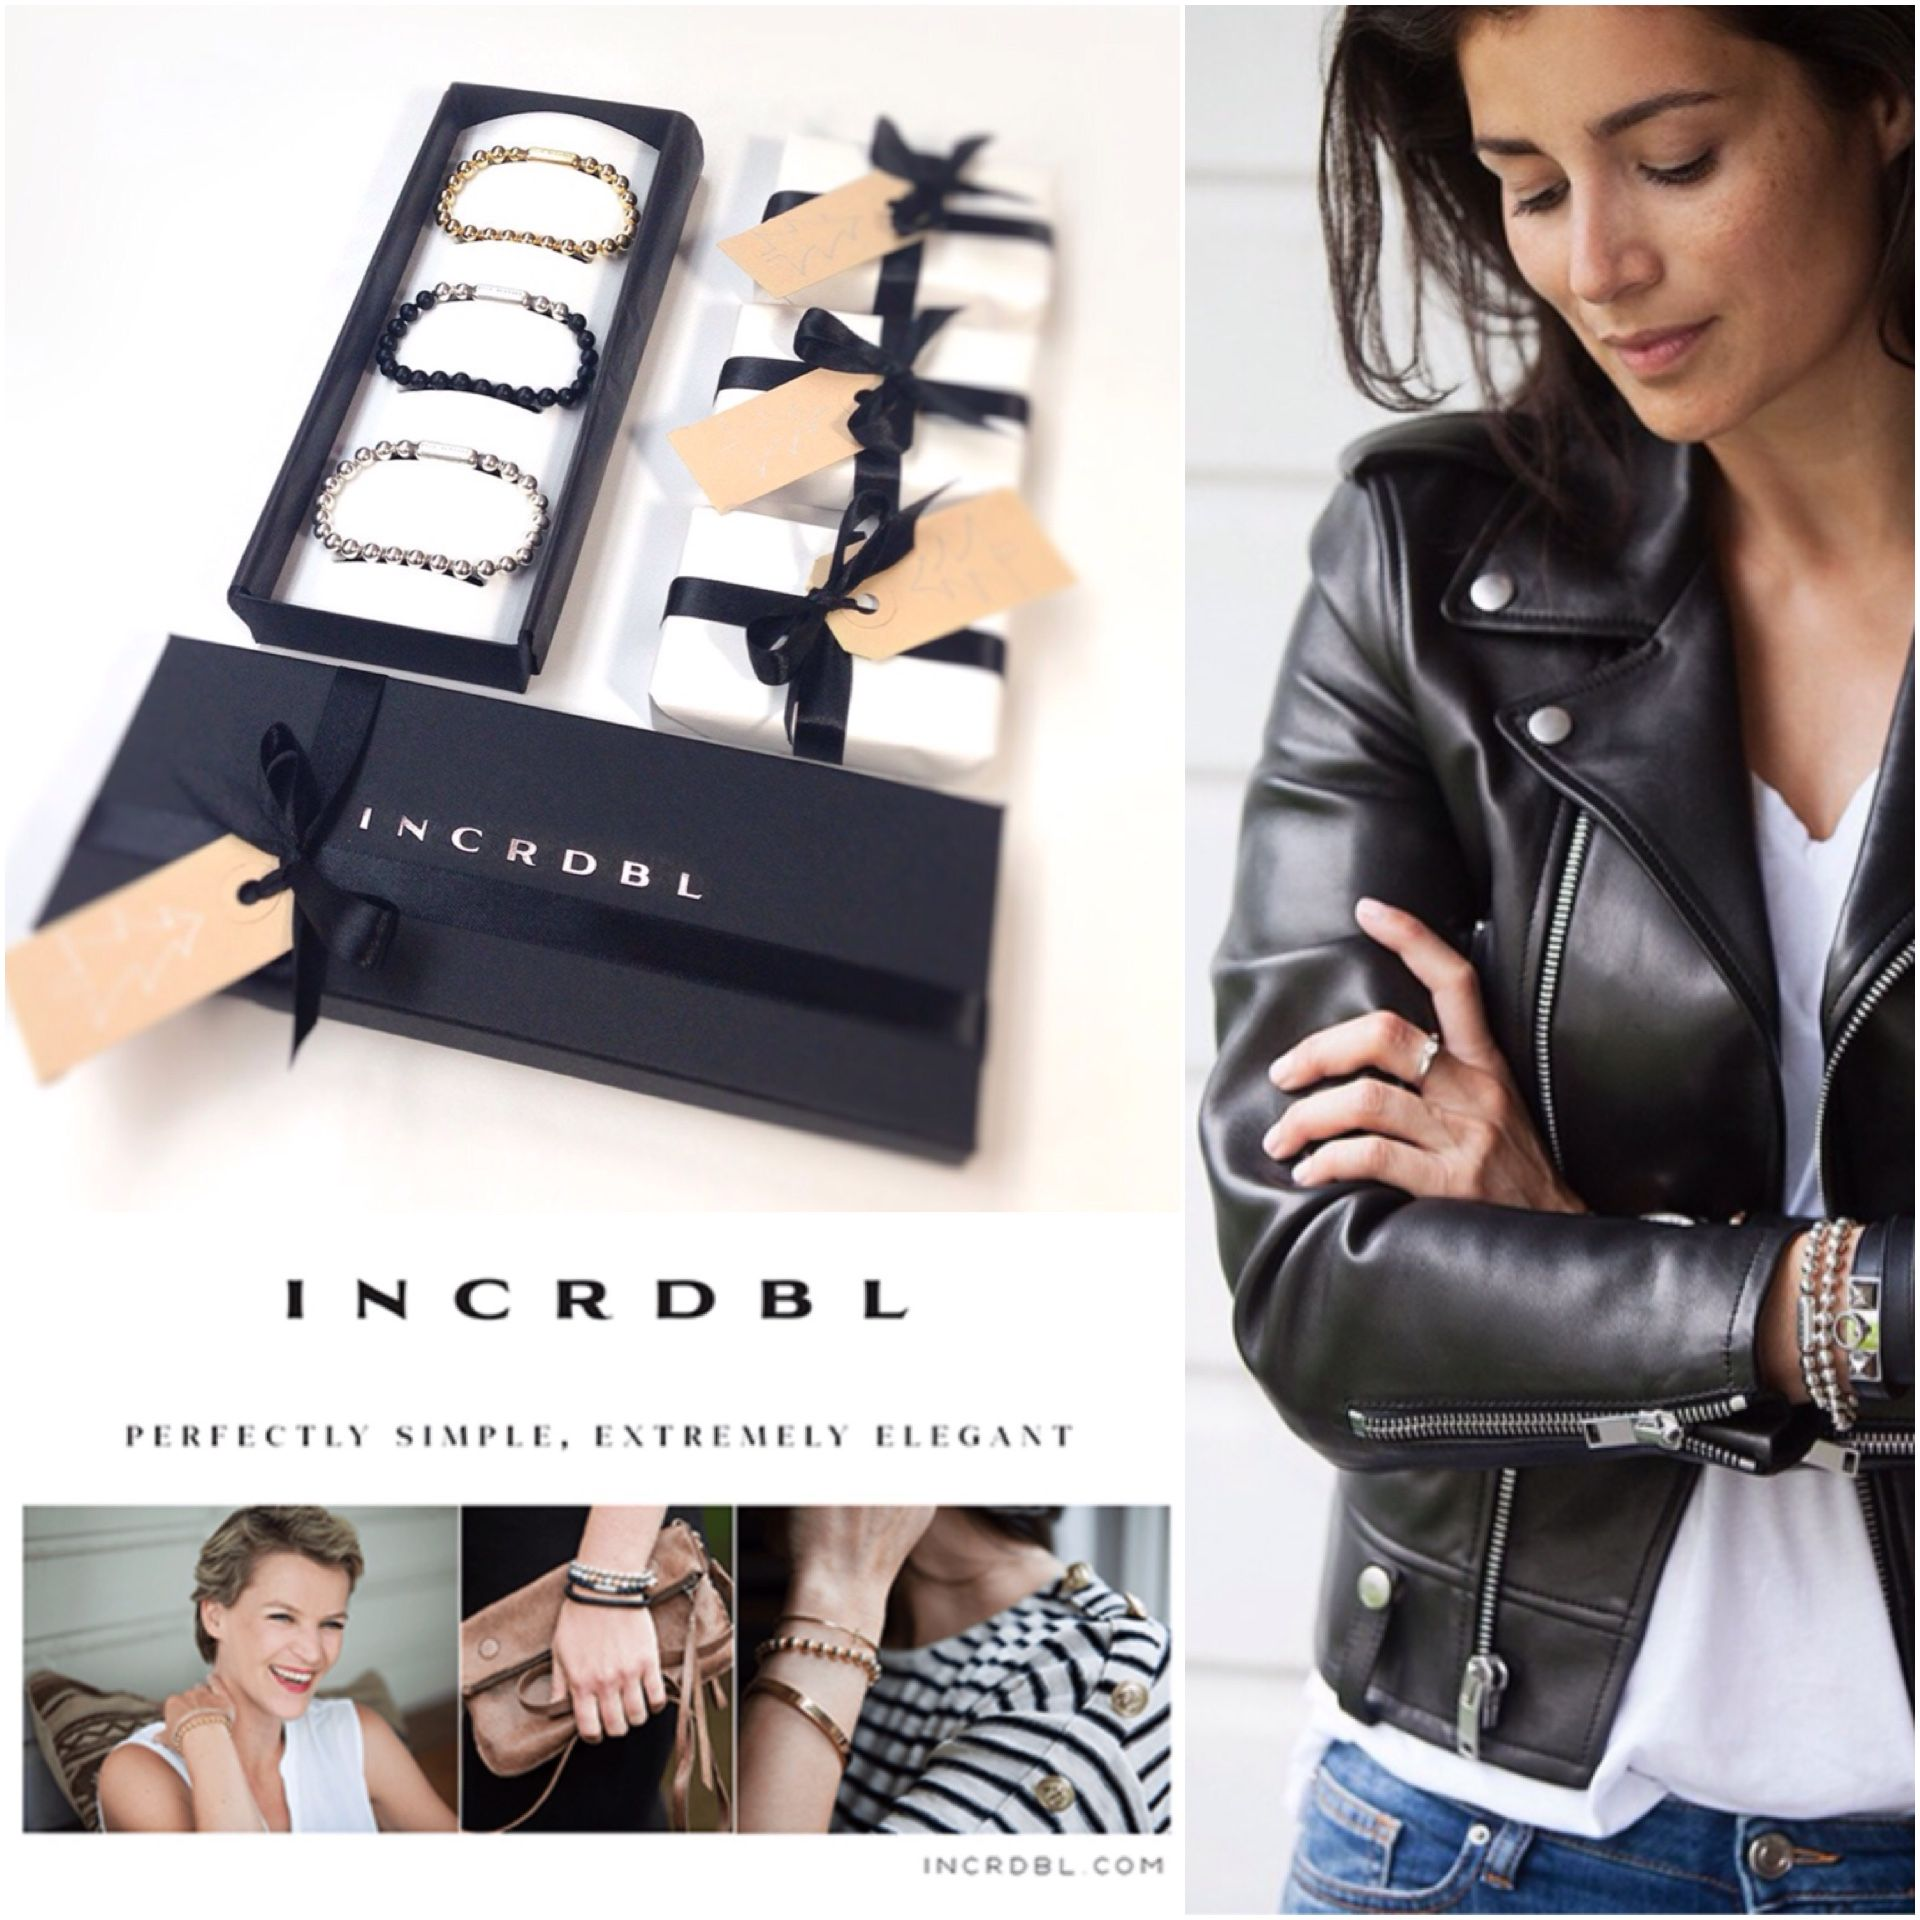 BlogForShops styling brands INCRDBL jewellery